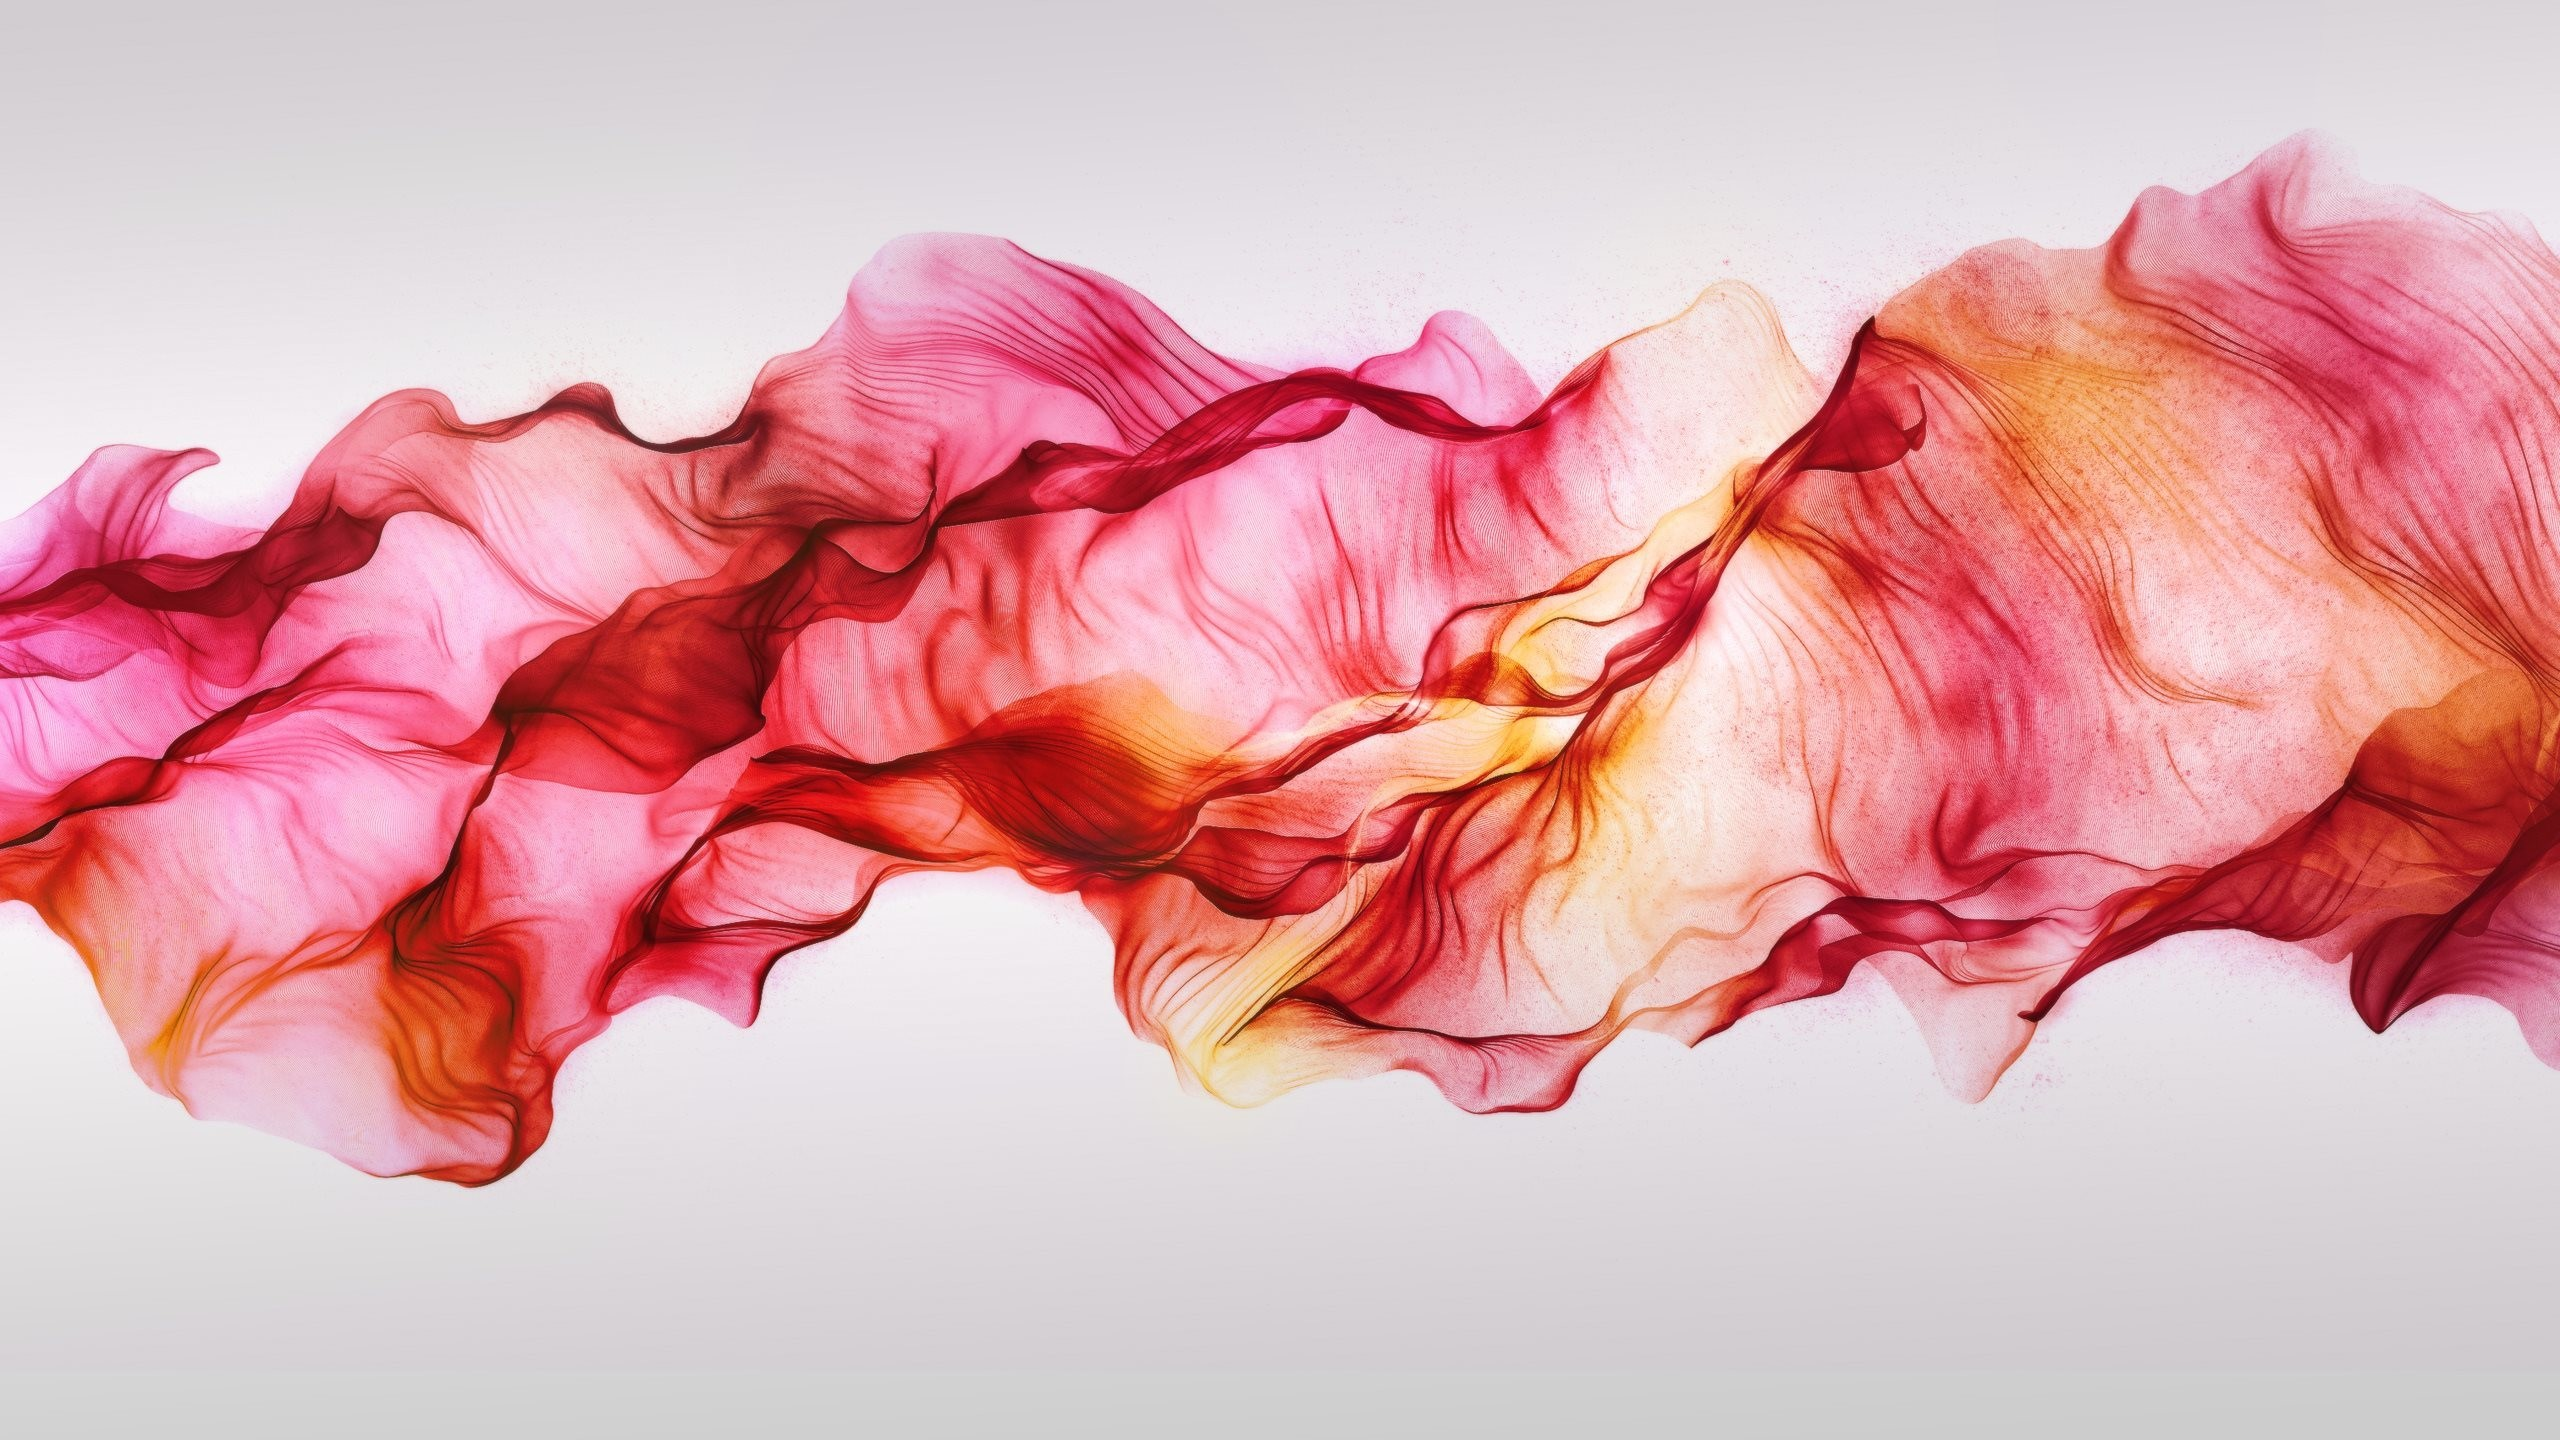 Cool Smoke Backgrounds 69 Pictures